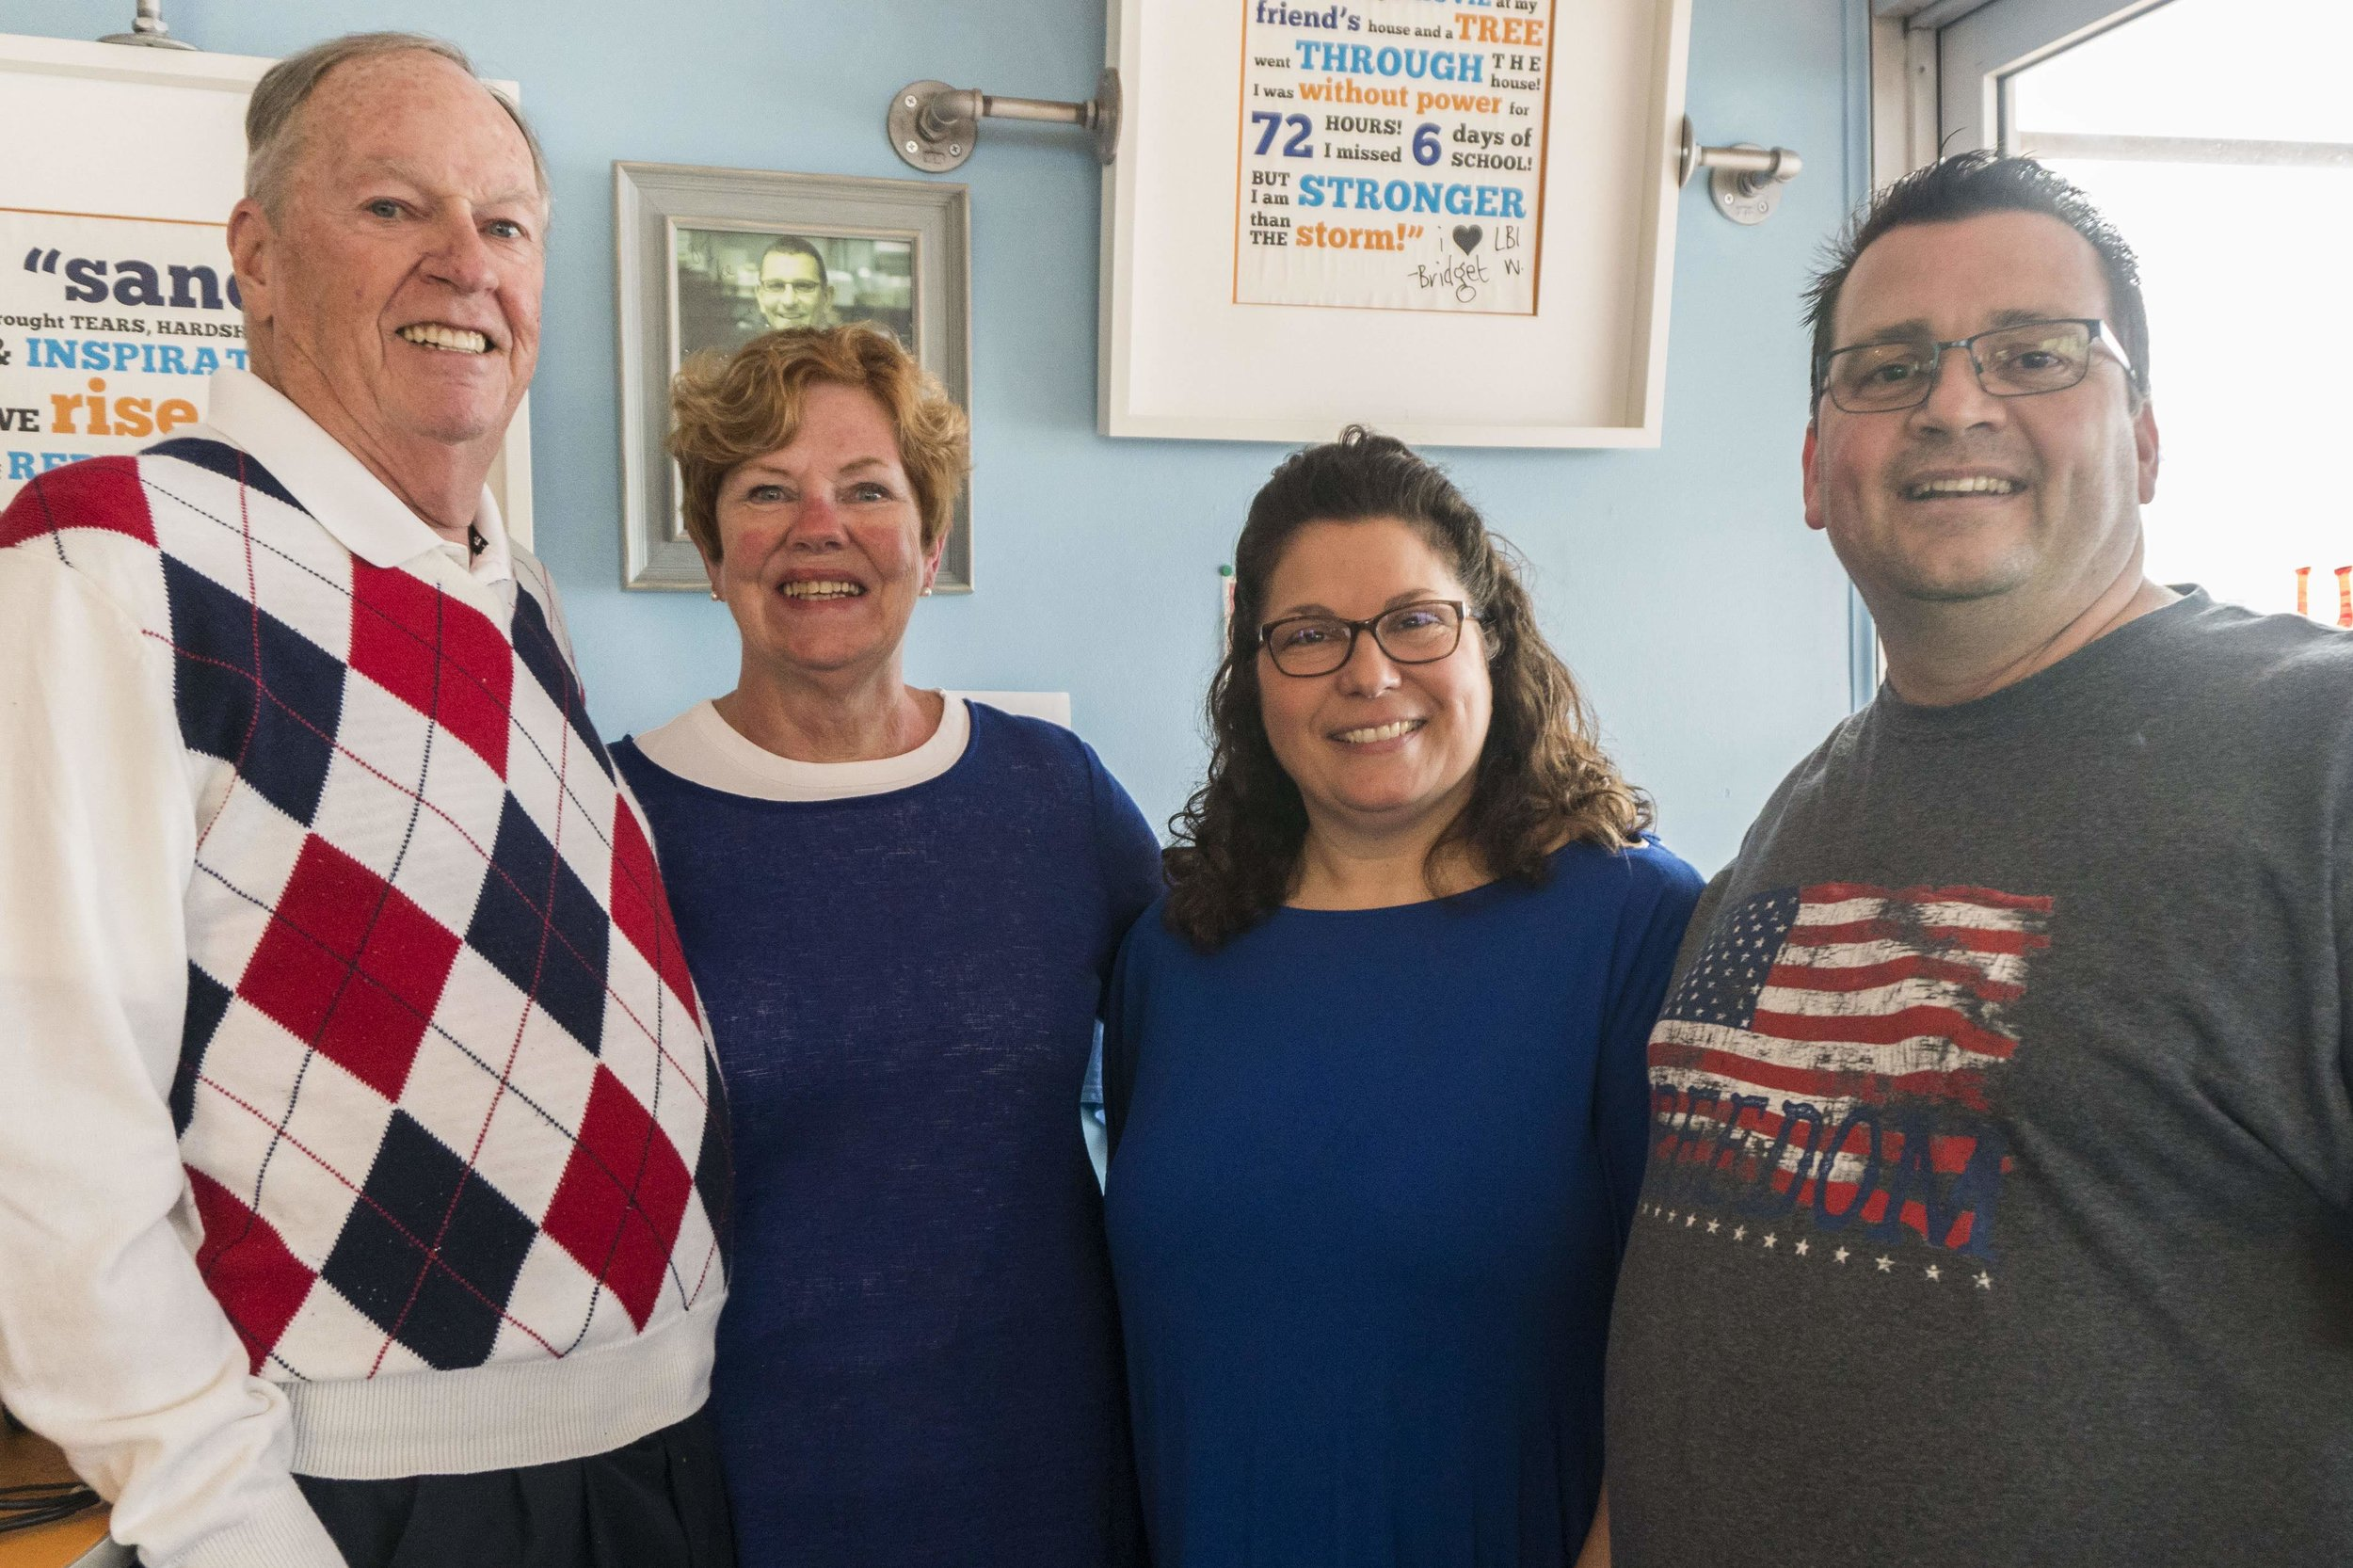 Former owners of the LBI Pancake House, the Waldrons (left) pose with the new owners, Christine and Victor Bilcik. Photo: Tori Bilcik, 2018.